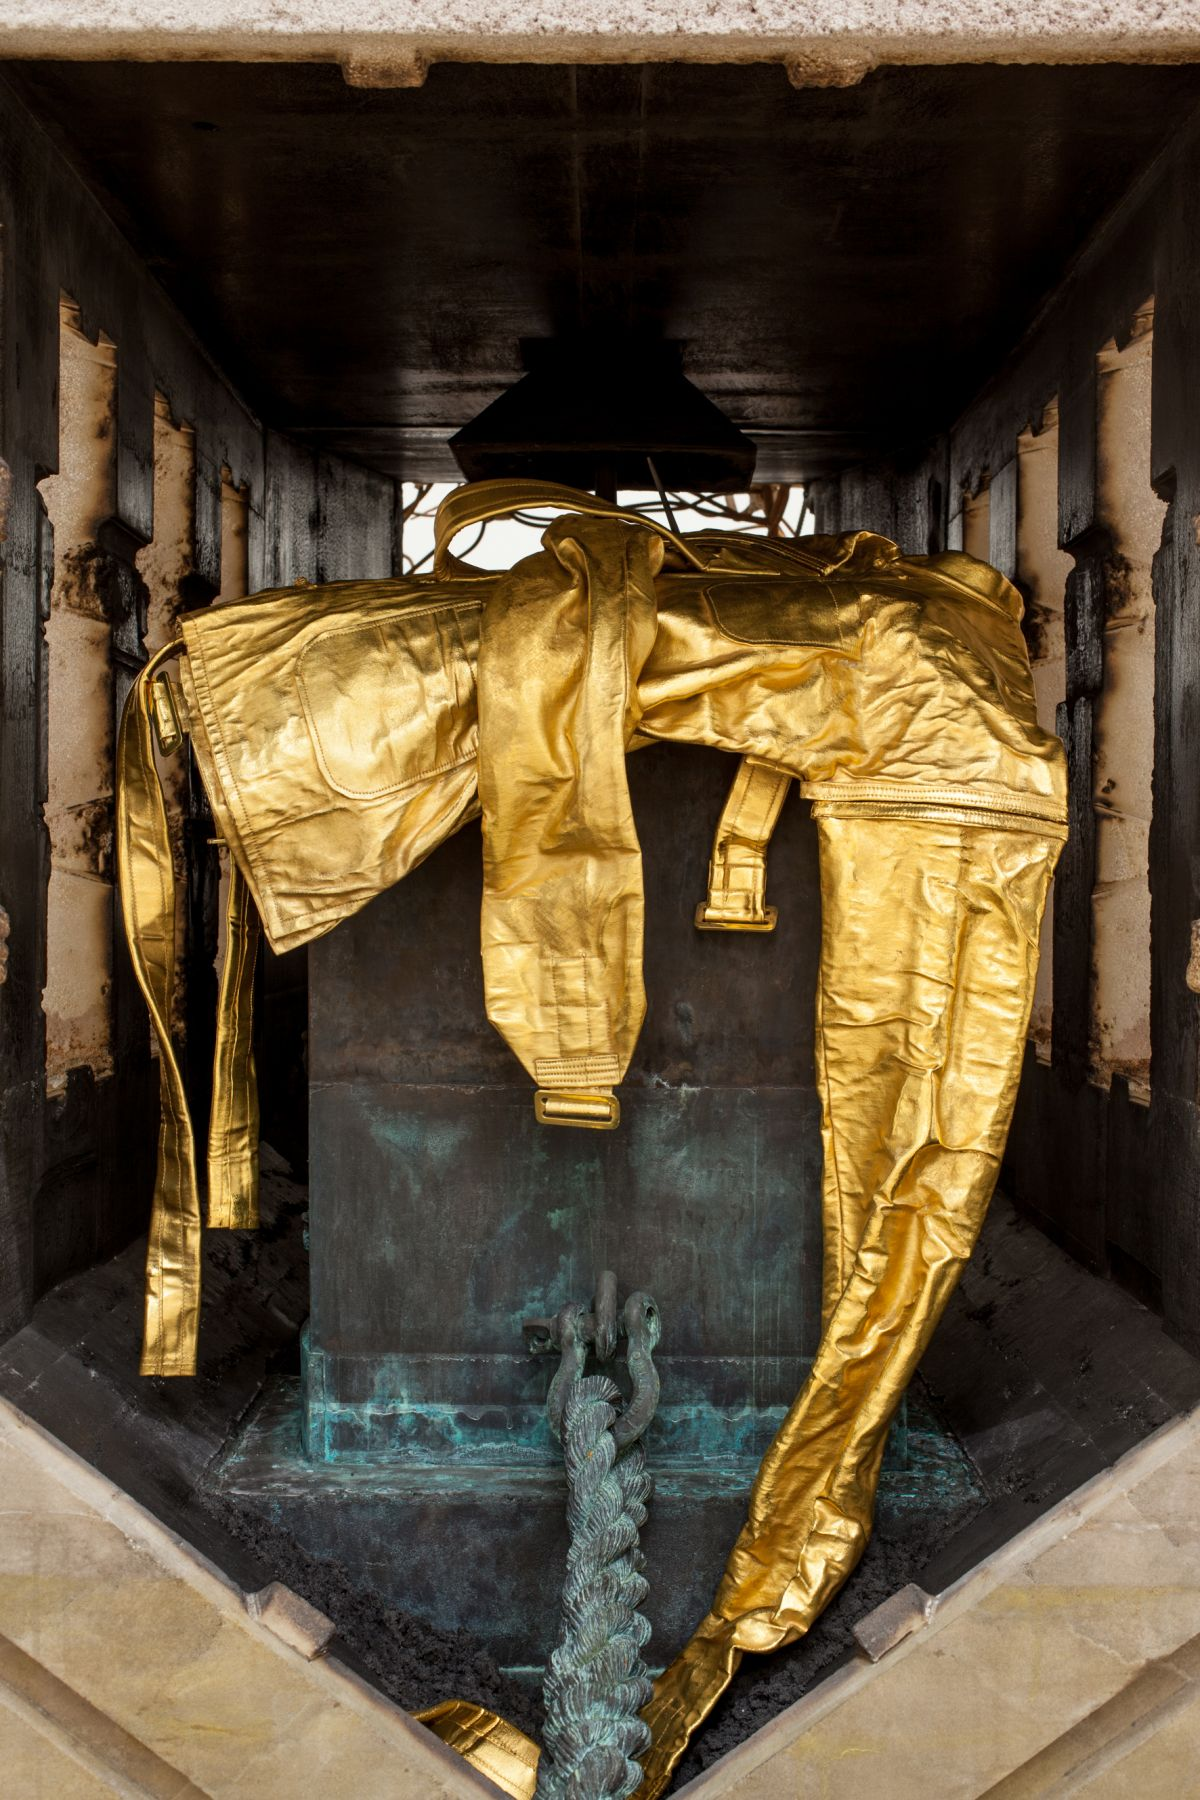 Matthew Barney - River of Fundament